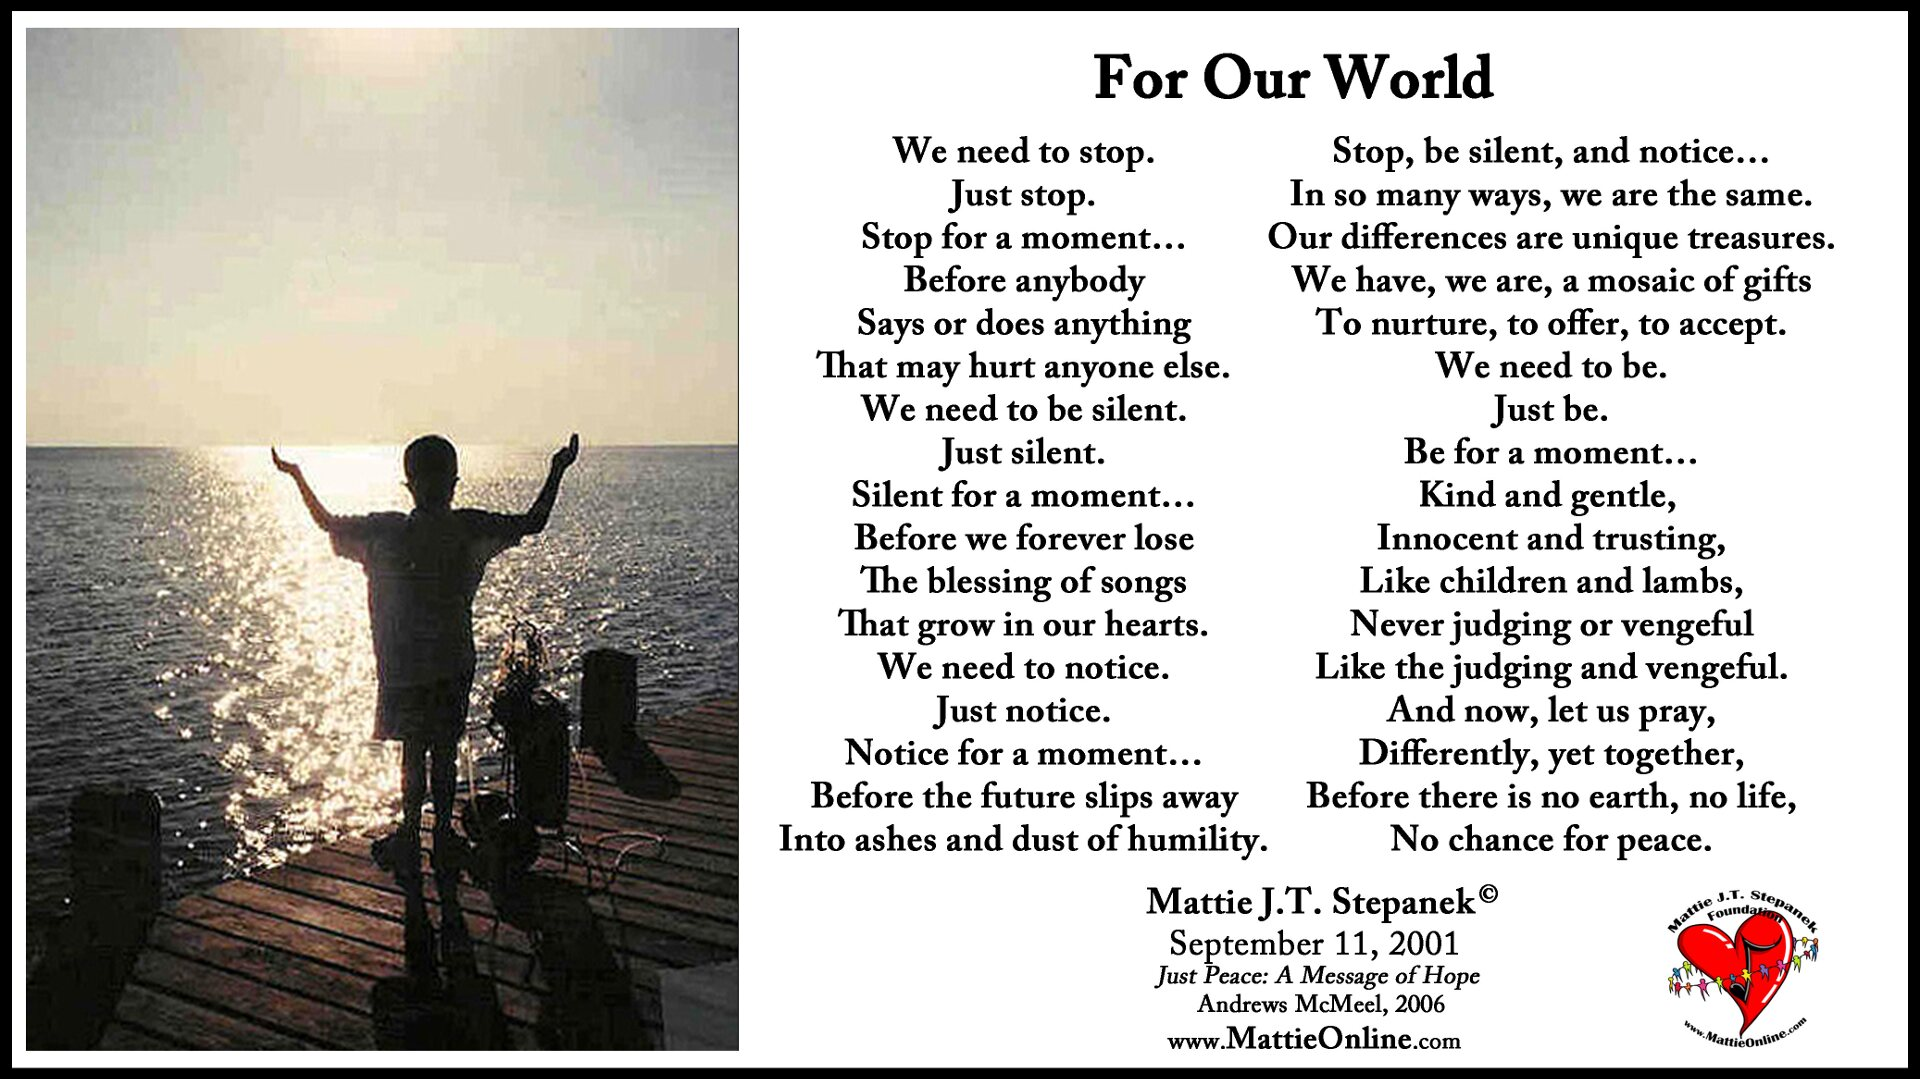 9 11 thoughts for our world mattie j t stepanek foundation